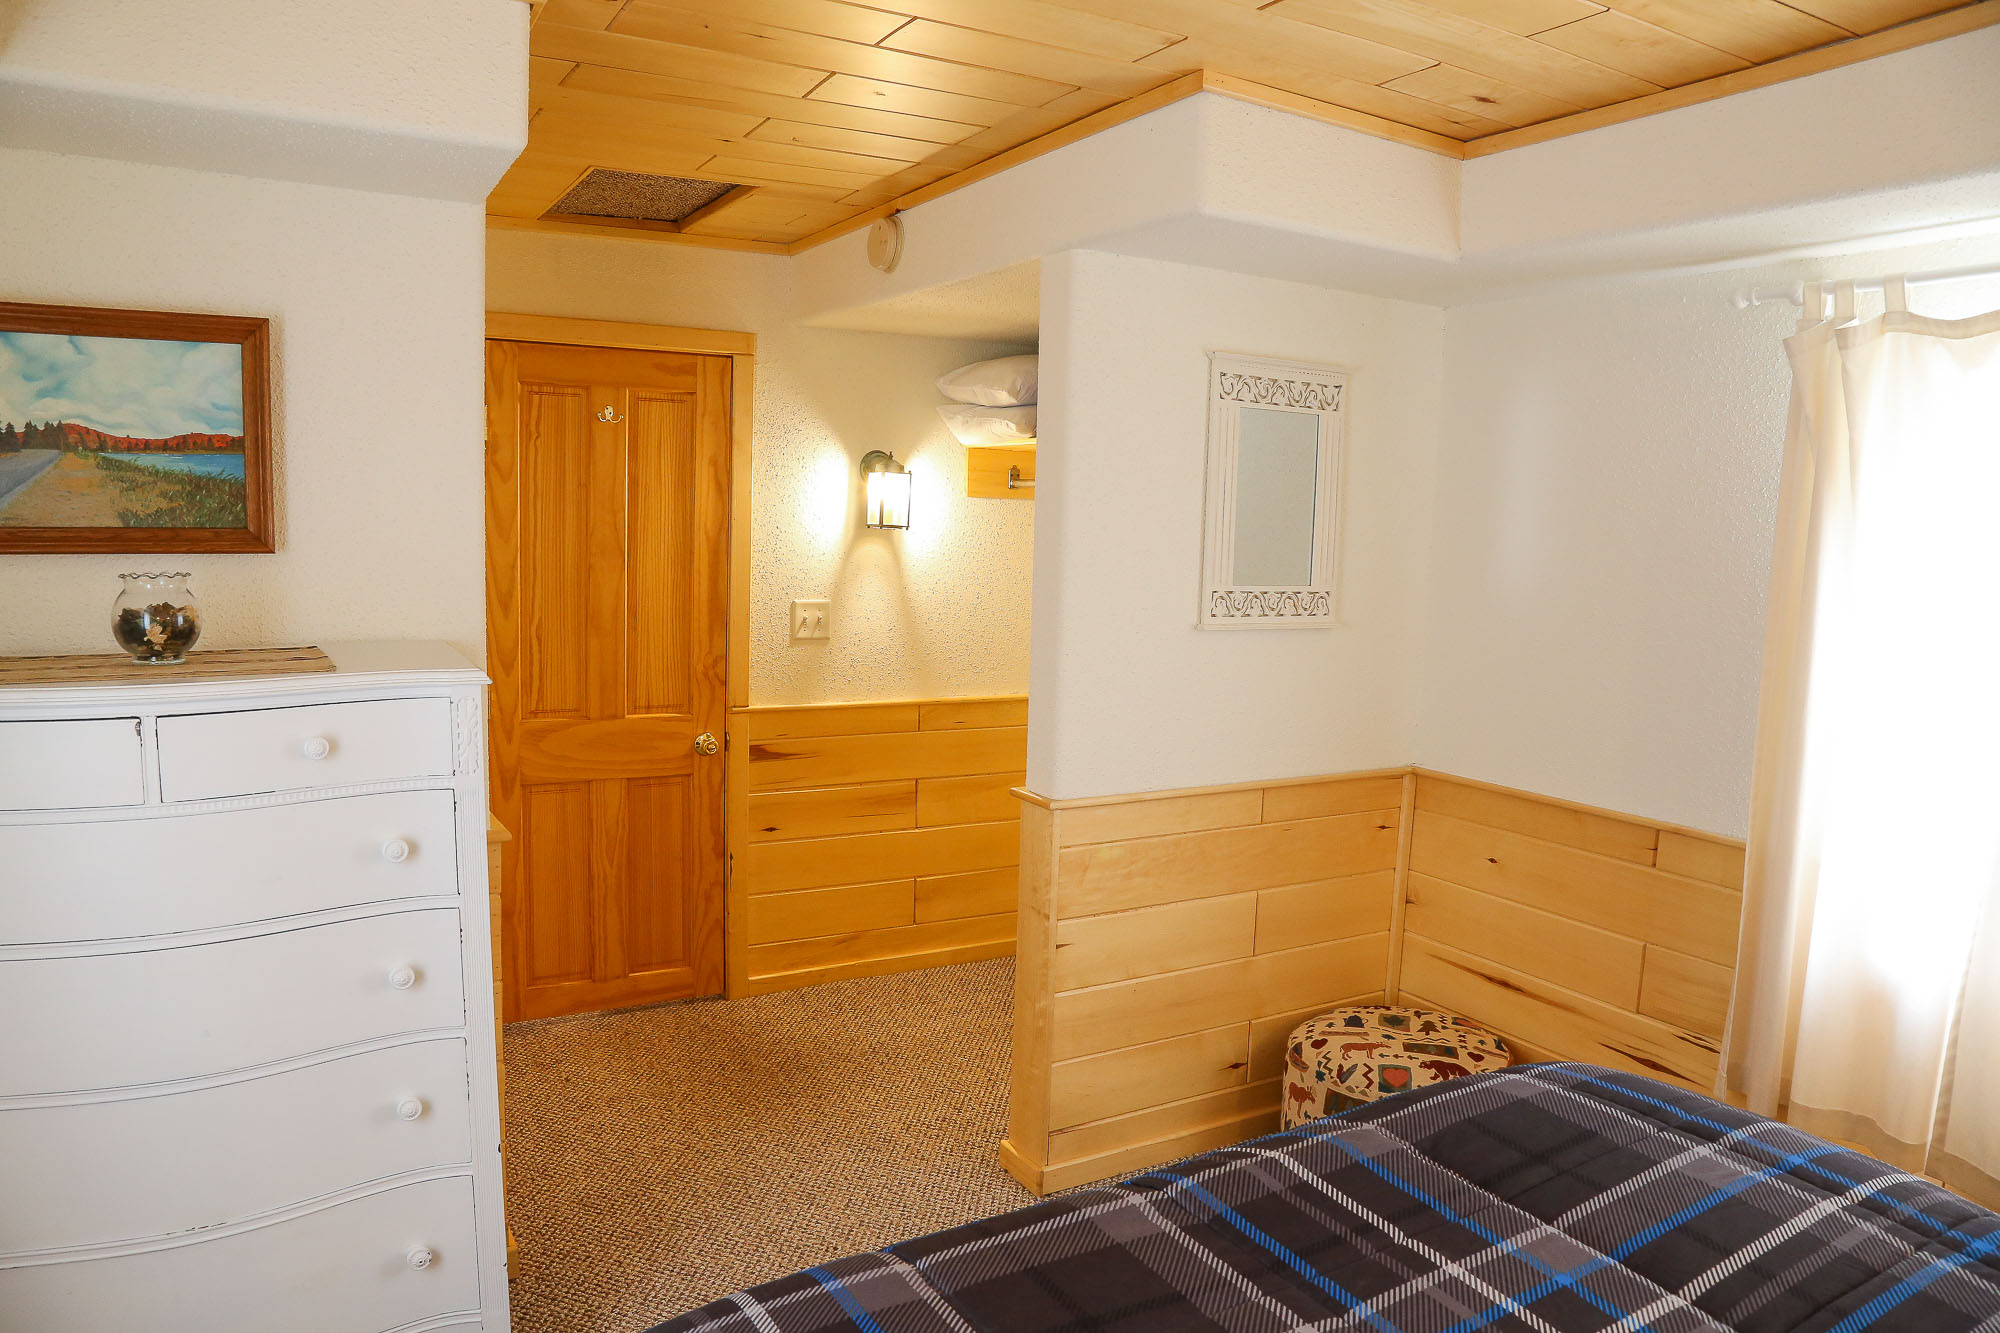 Photo of Cabin Lodging at the Wilderness Resort in Lac La Belle Michigan